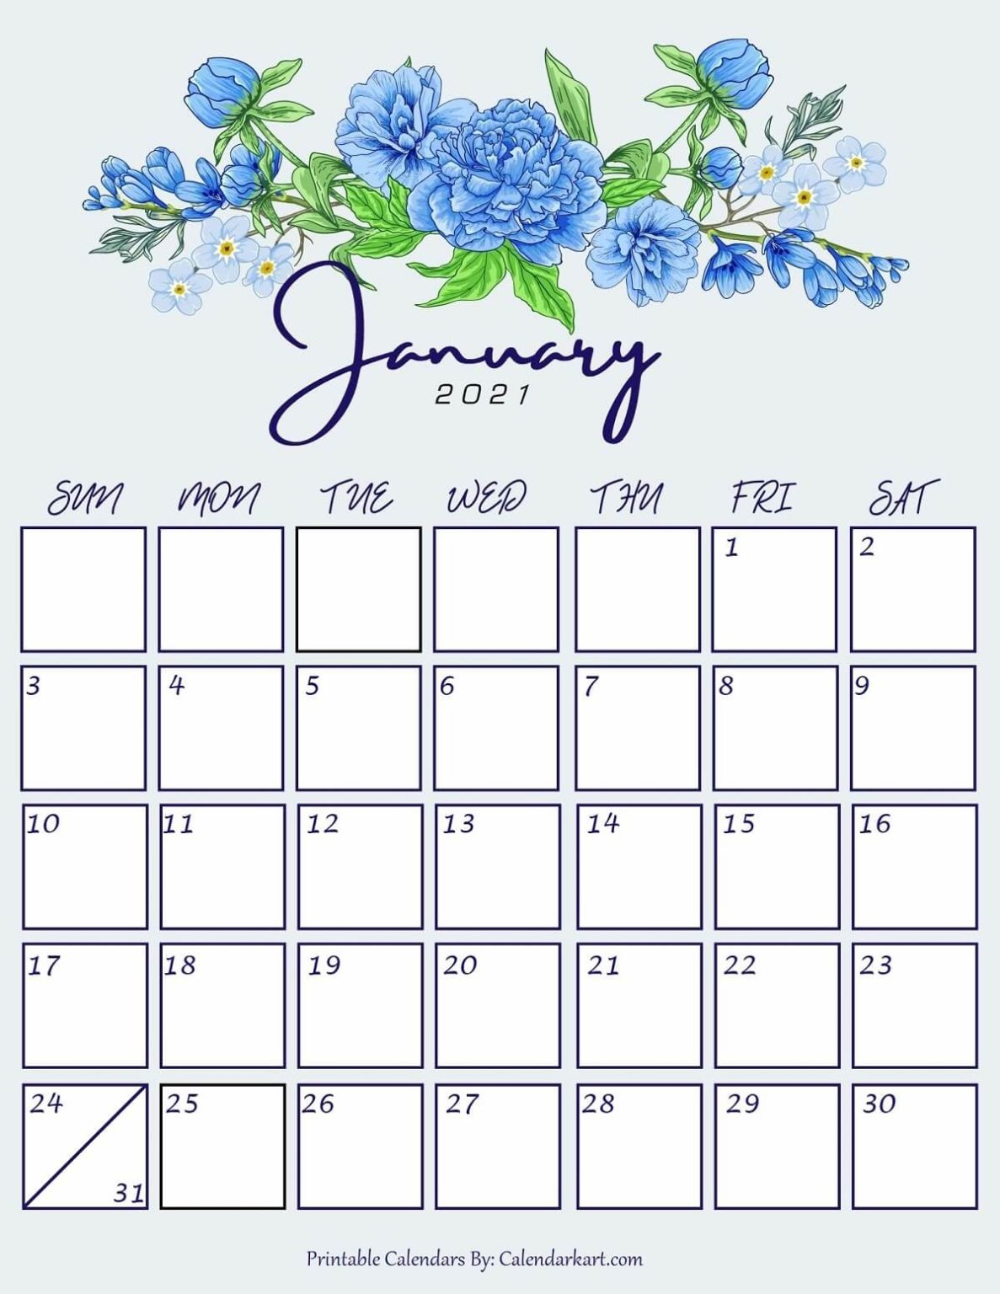 Cute January 2021 Floral Calendar In 2020 Printable Calendar Design 2021 Calendar Calendar Design